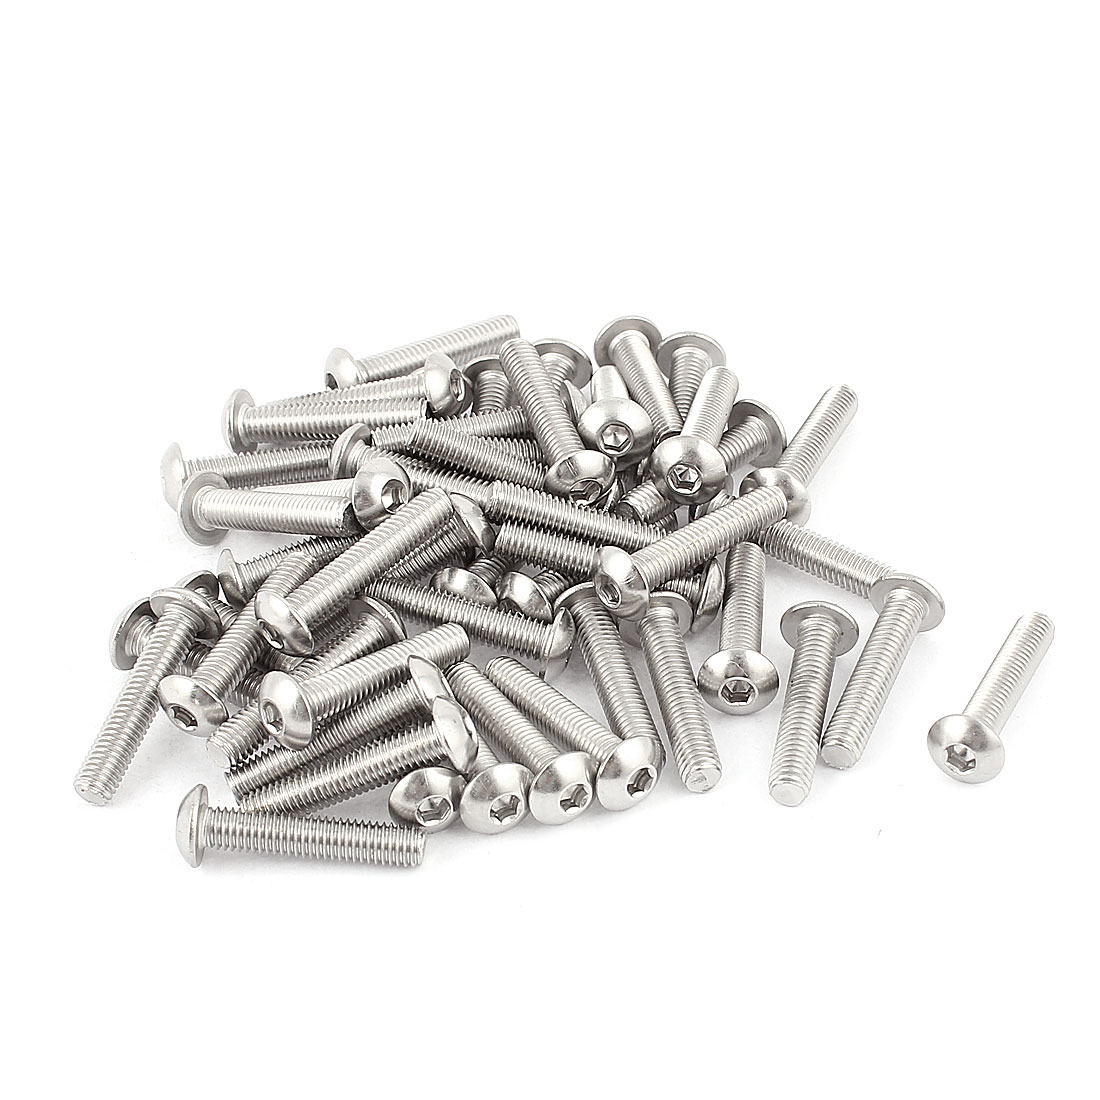 M5x25mm Stainless Steel Button Head Hex Socket Cap Screws Silver Tone 50Pcs